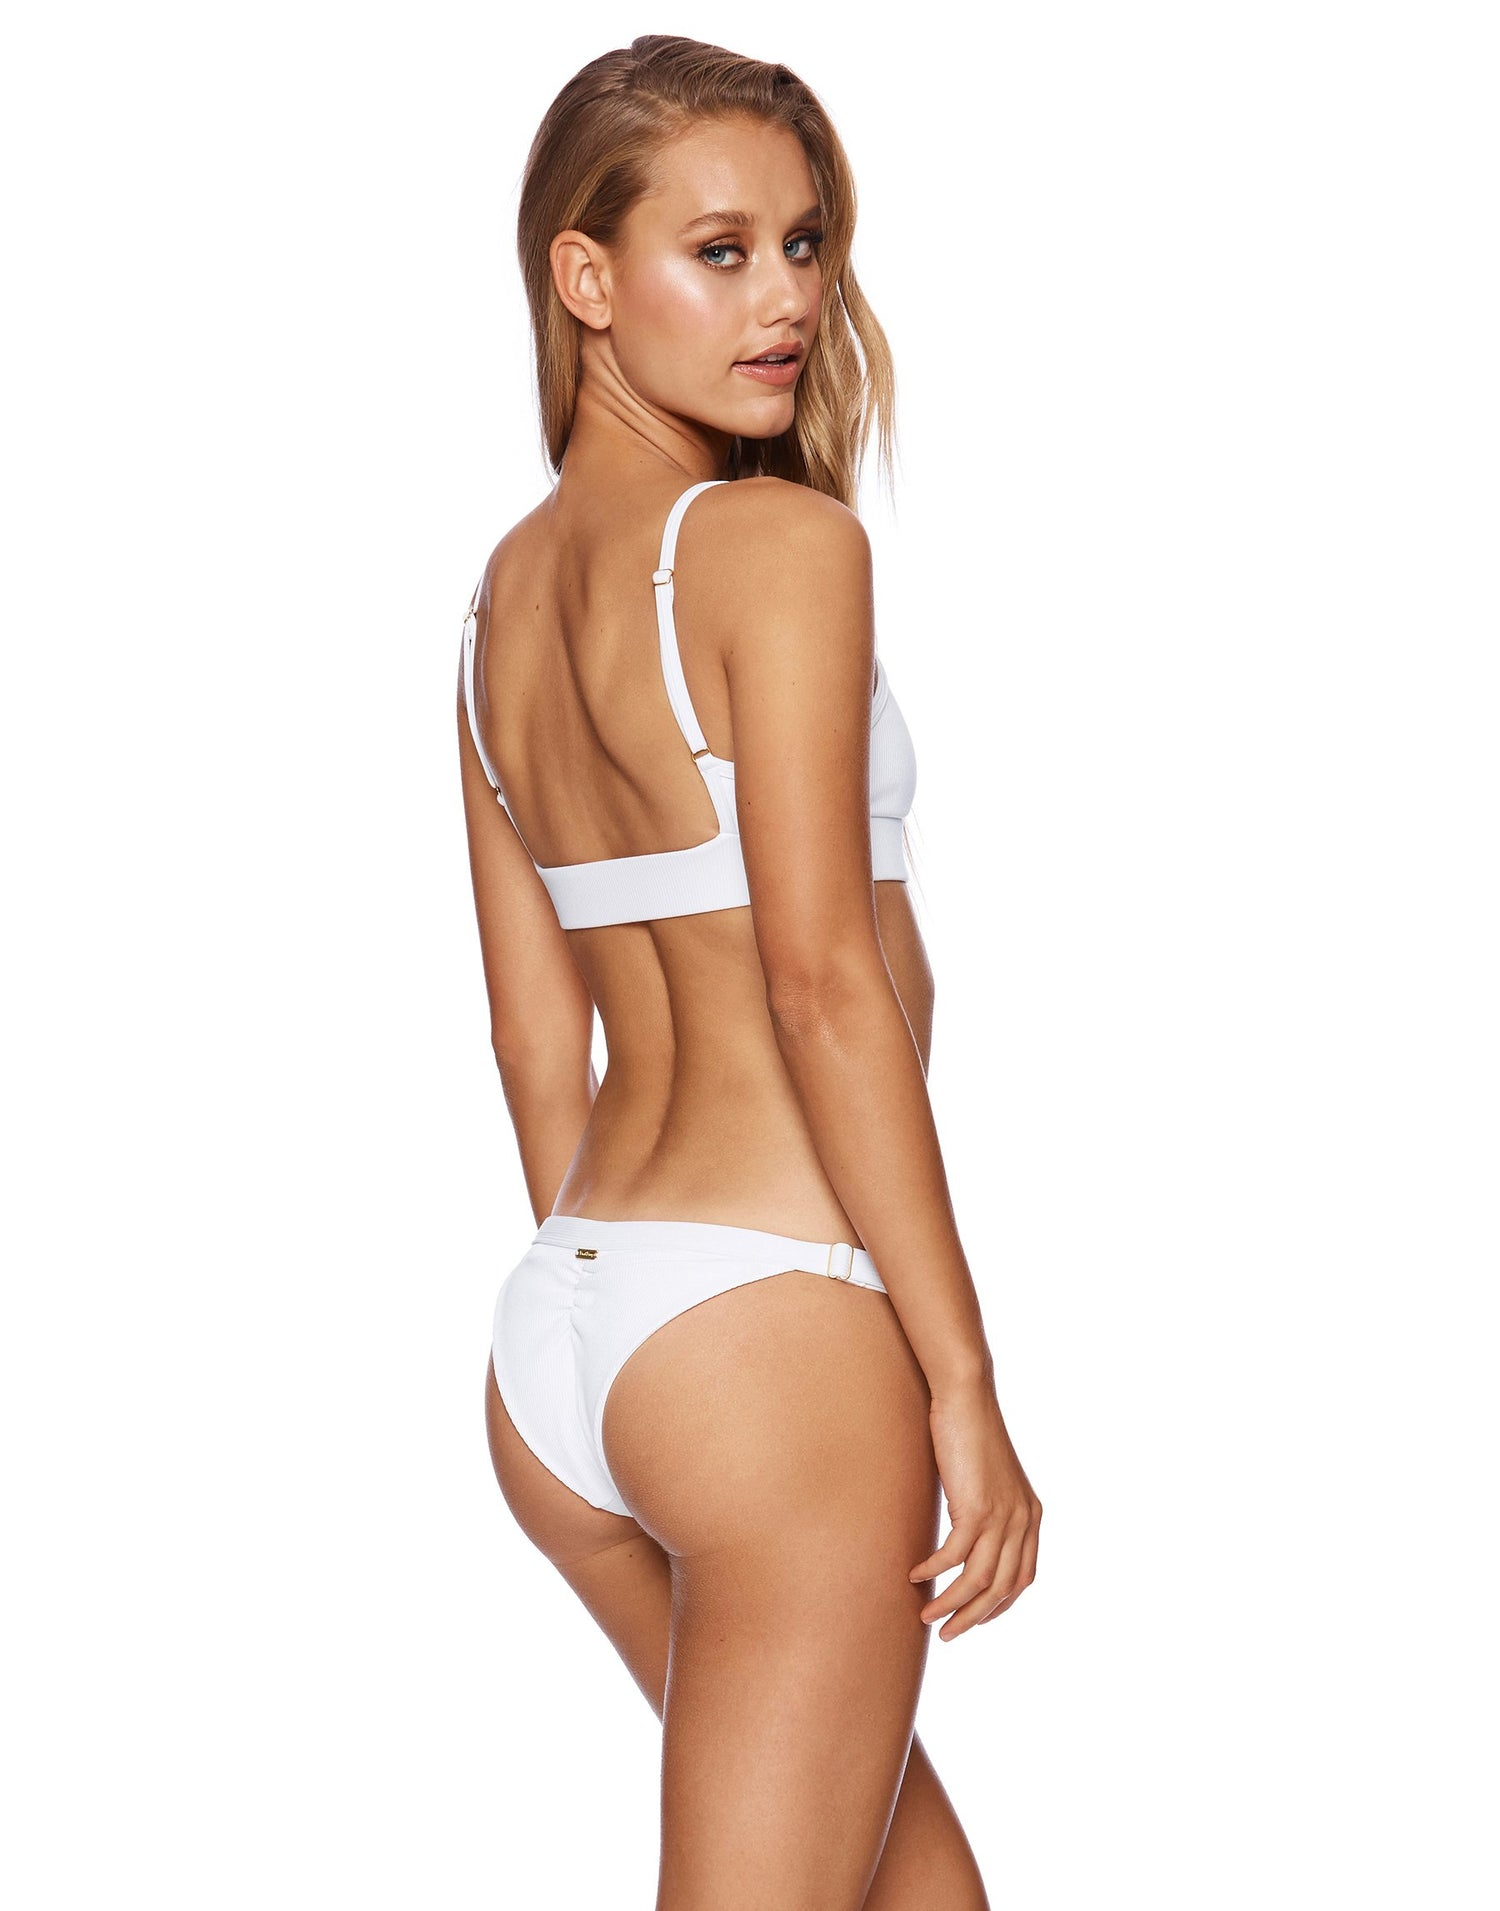 Rib Tide Bralette Bikini Top in White Rib - back view